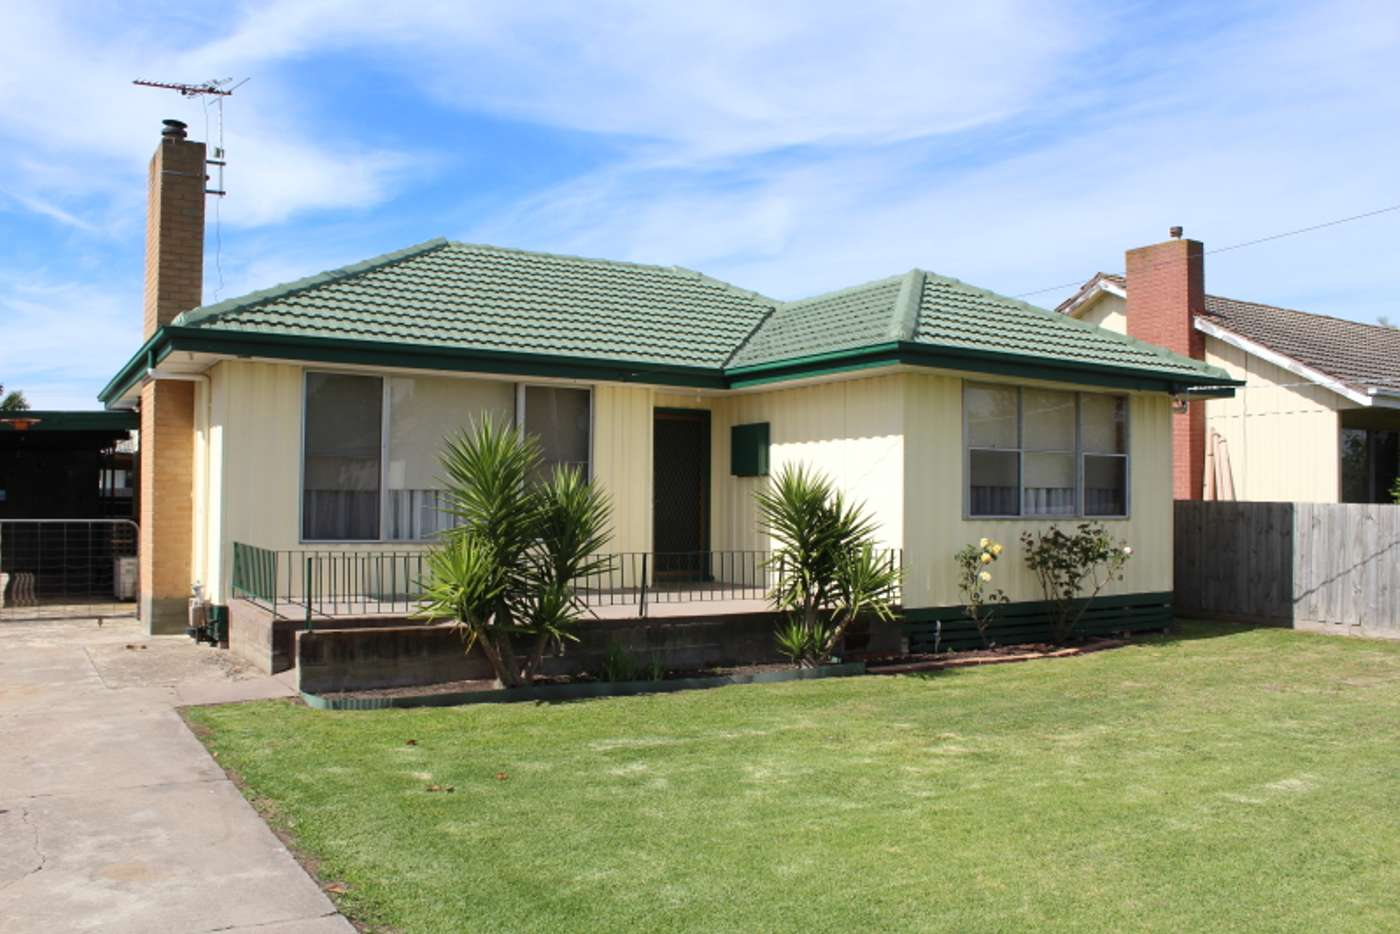 Main view of Homely house listing, 29 Overend  Crescent, Sale VIC 3850